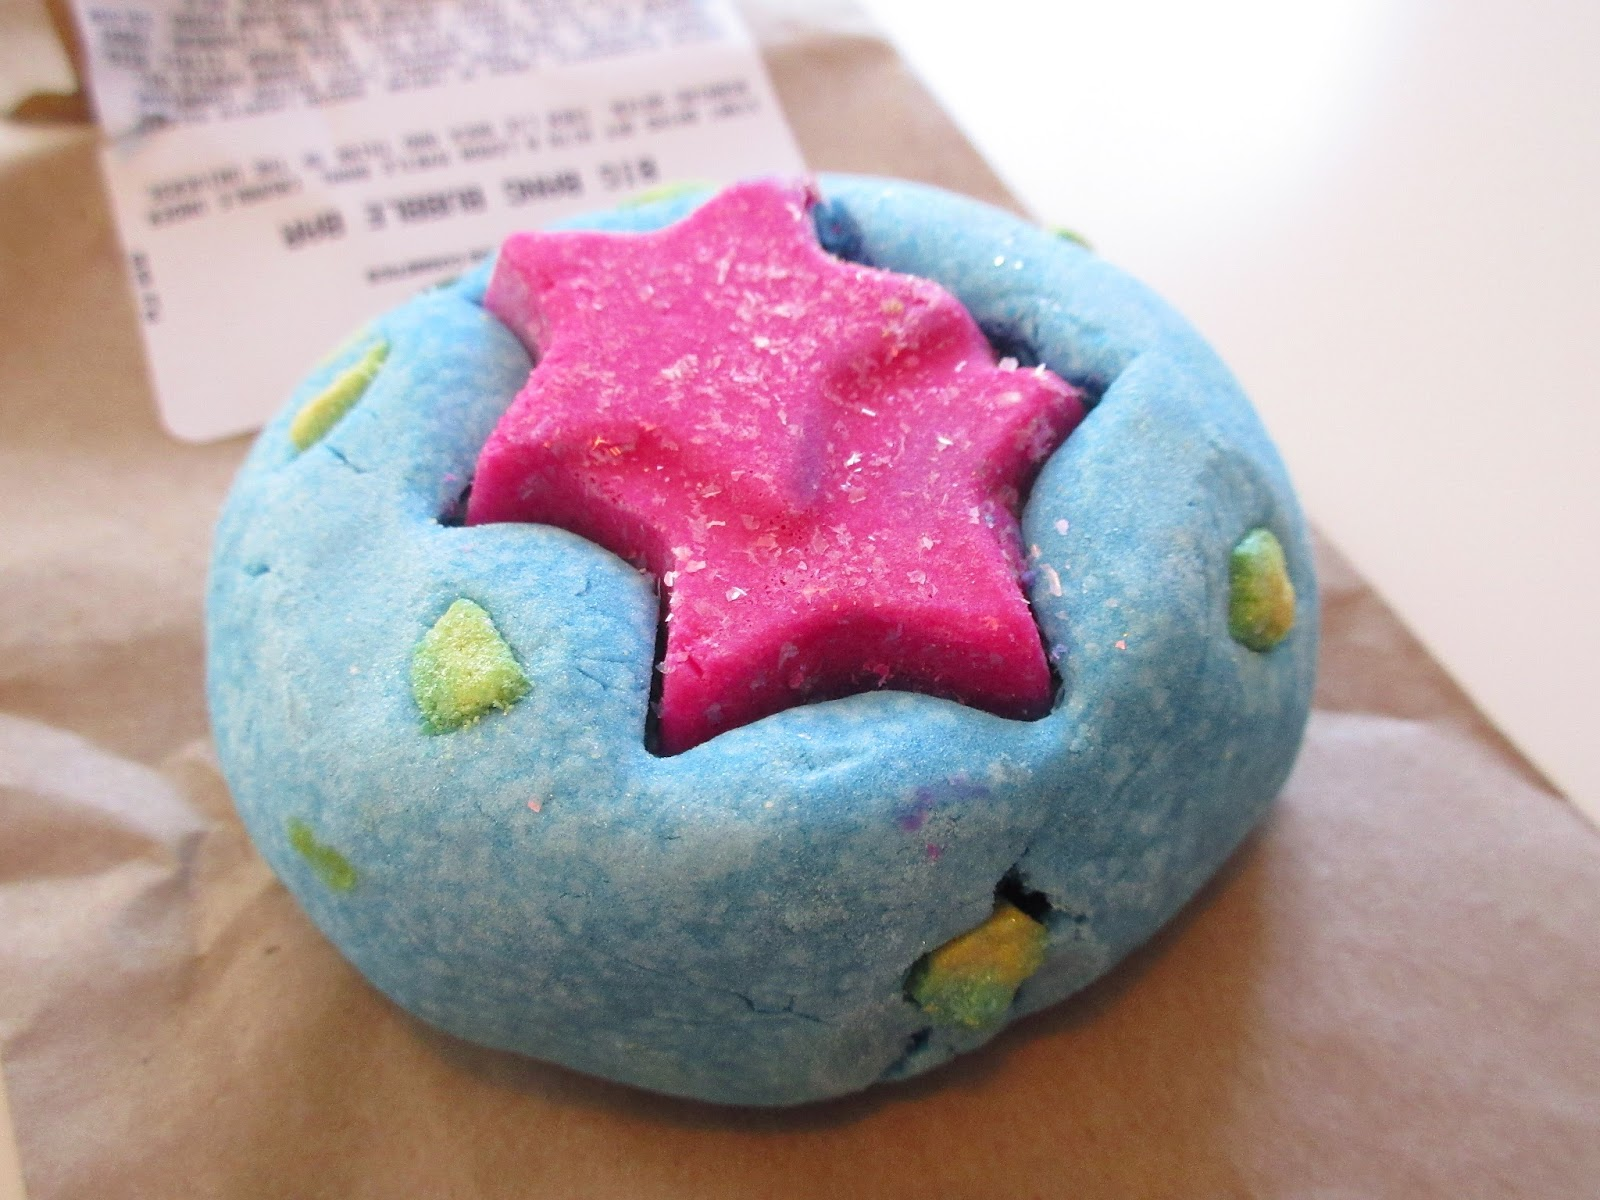 Lush Big Bang Bubble Bar Review